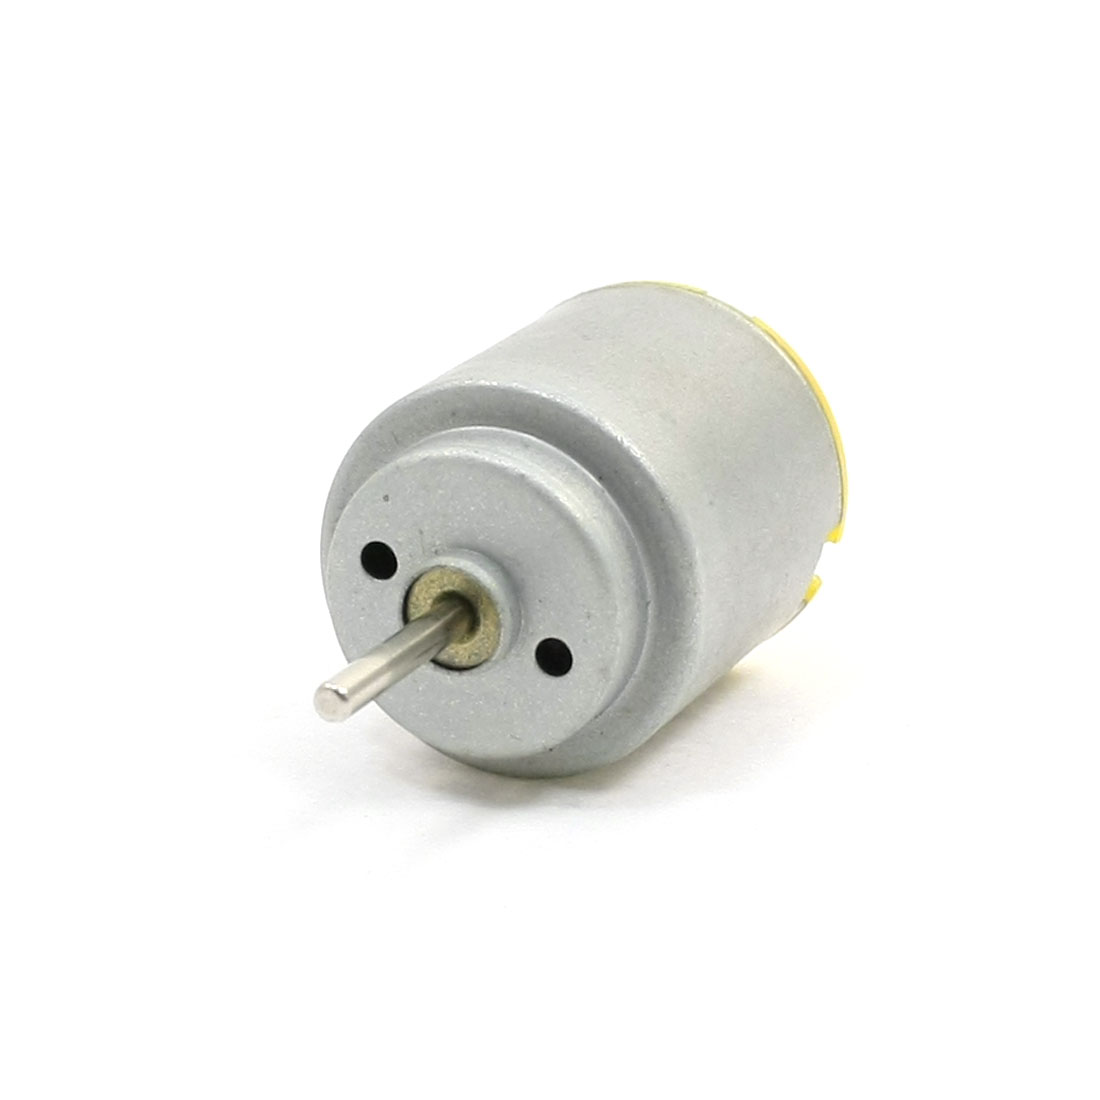 RS140 DC 6V 8000RPM 2Pole Terminals Magnetic Motor for Mini Fans